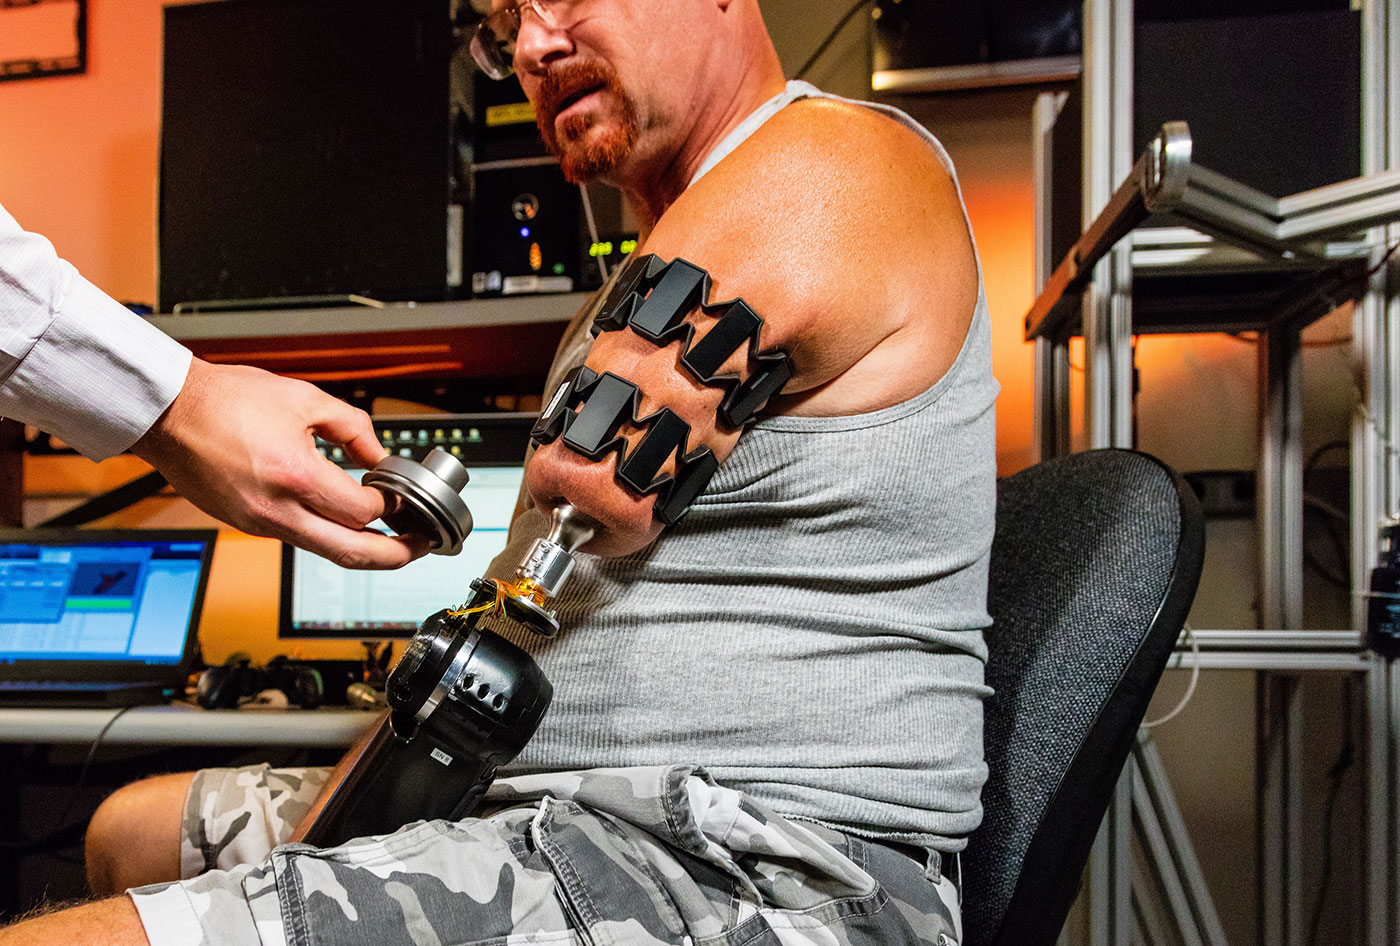 johnny matheny, an amputee, wearing moo armbands and working with his prosthetic arm